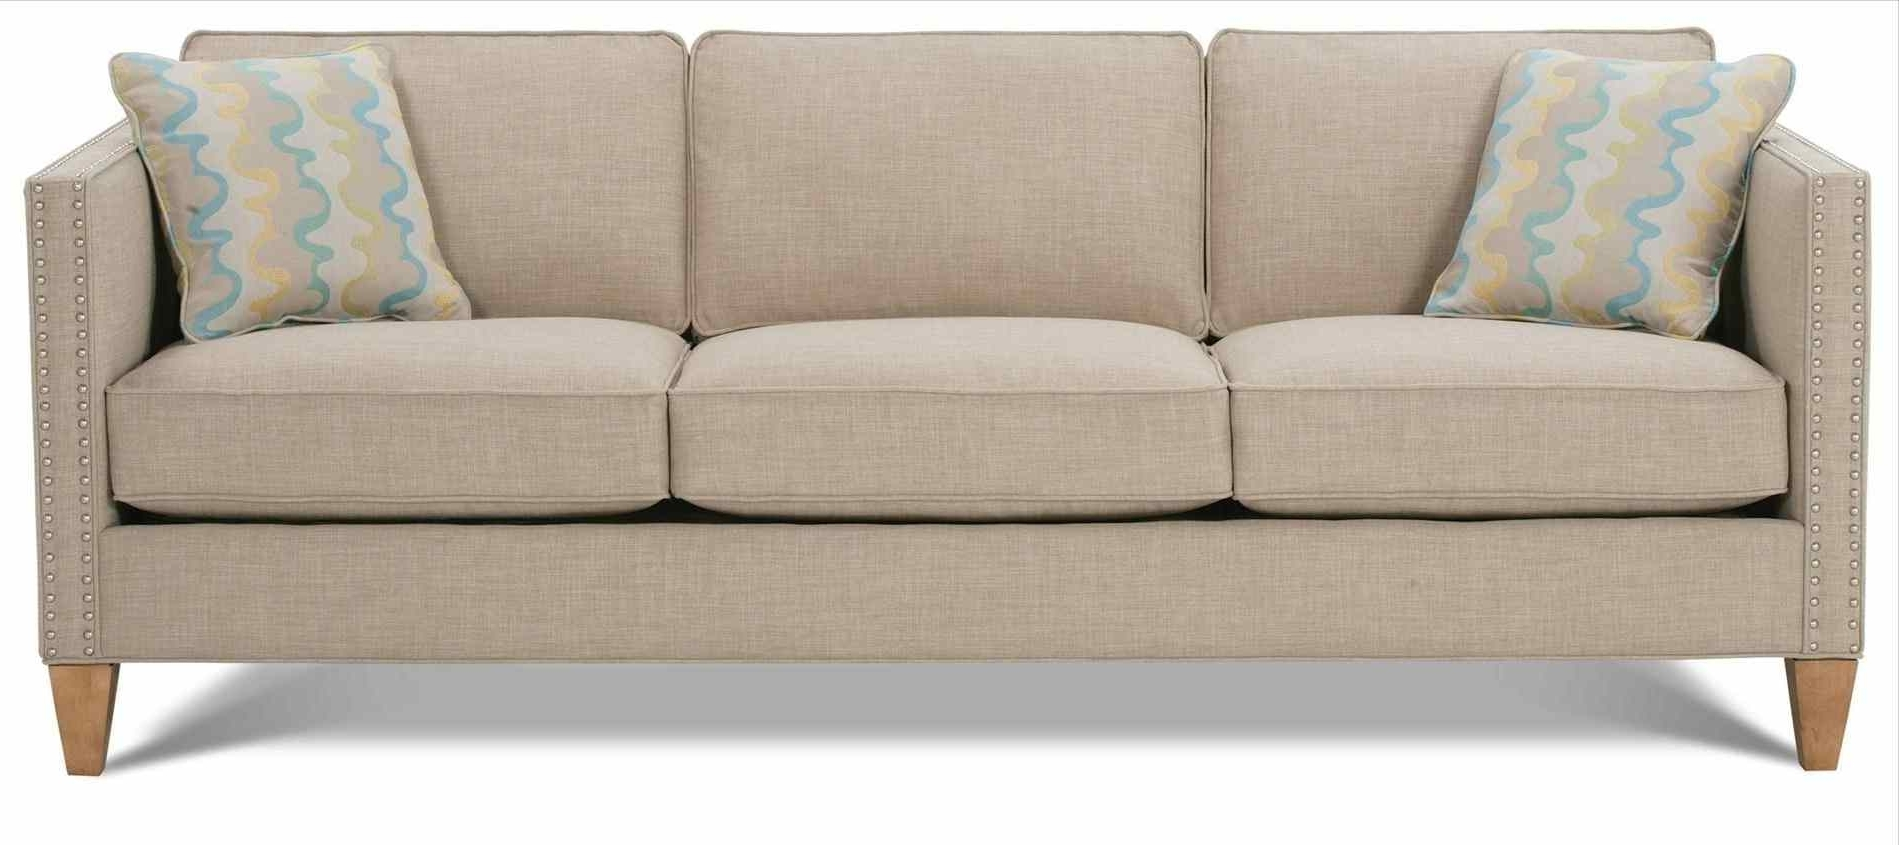 Well Liked Sofa : Grey Lounge Furniture Out U Best Collection Of S Best Throughout Modern 3 Seater Sofas (View 20 of 20)